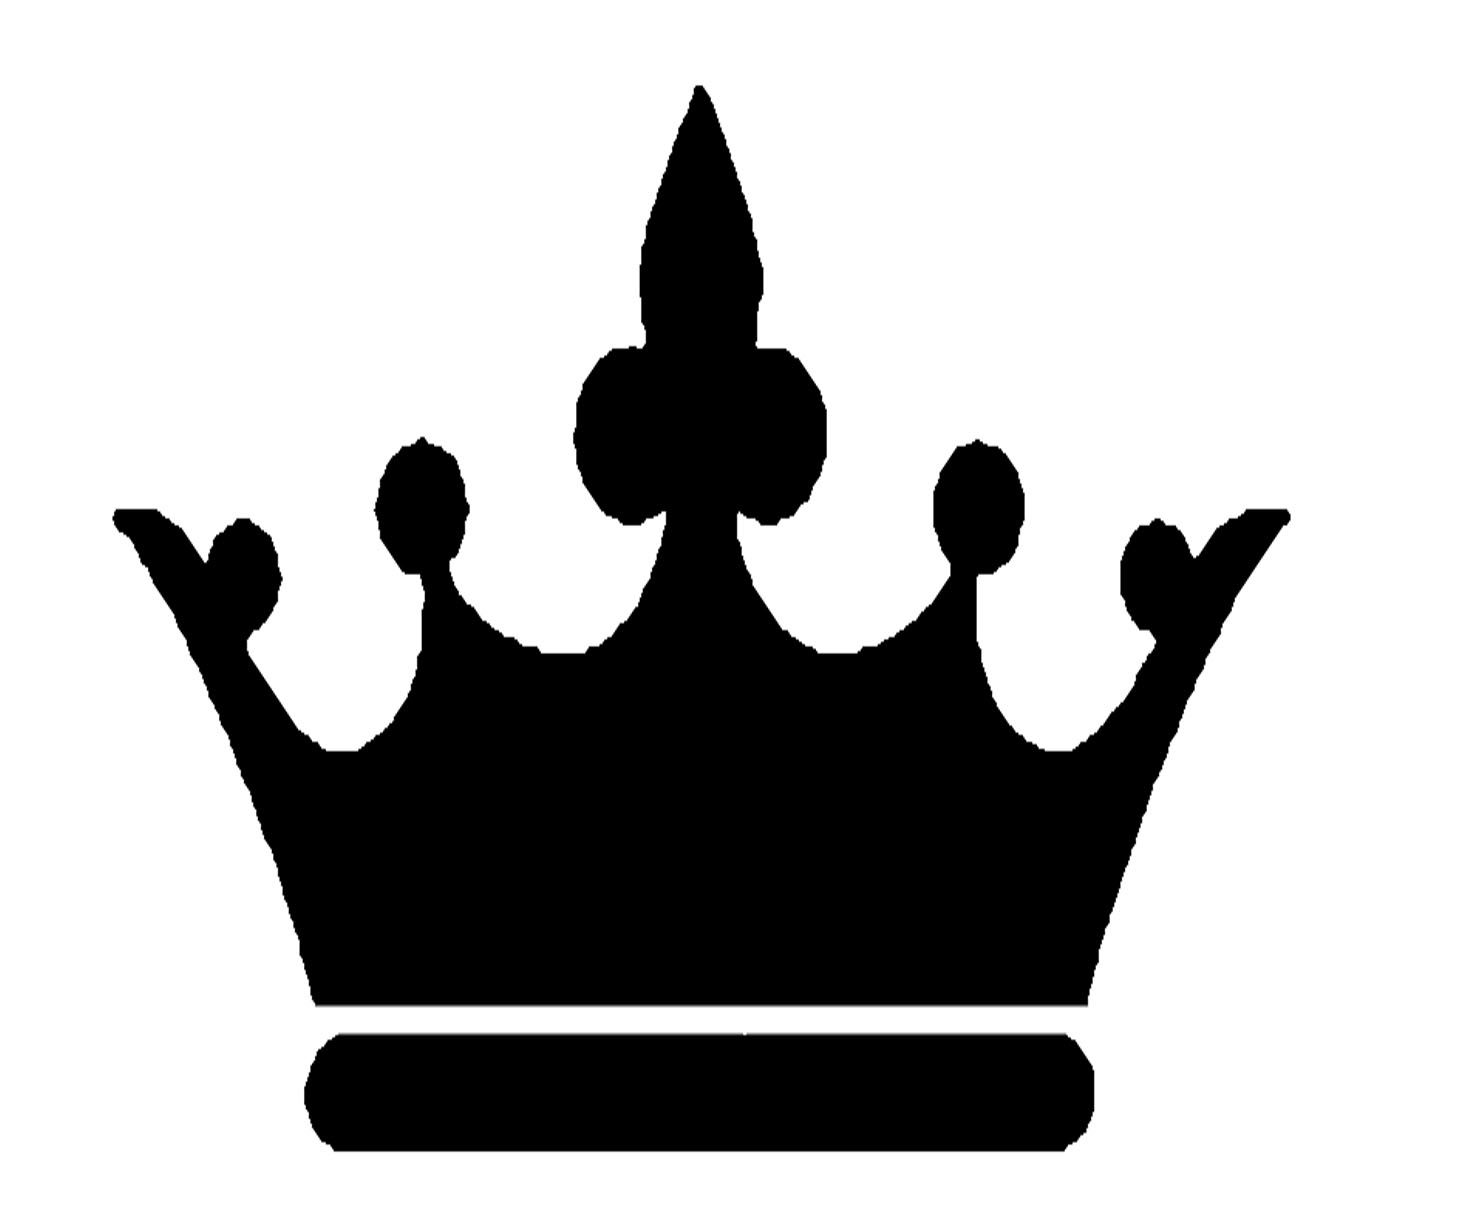 king crown silhouette at getdrawings com free for personal use rh getdrawings com clip art crowns for kings clip art crowns and tiaras